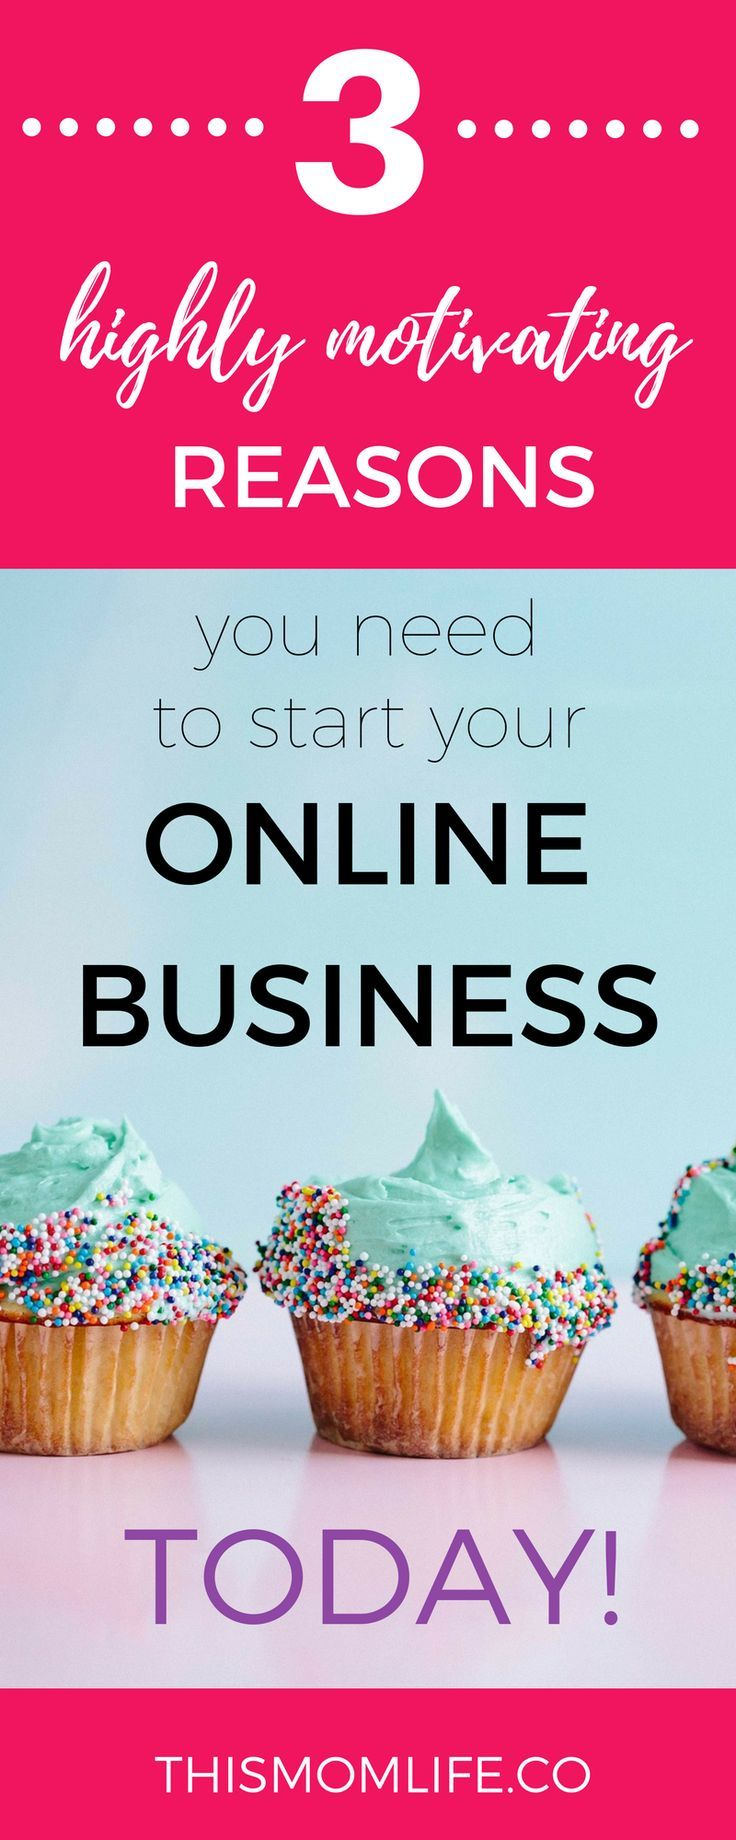 3 Reasons Why You Need To Start An Online Business Today